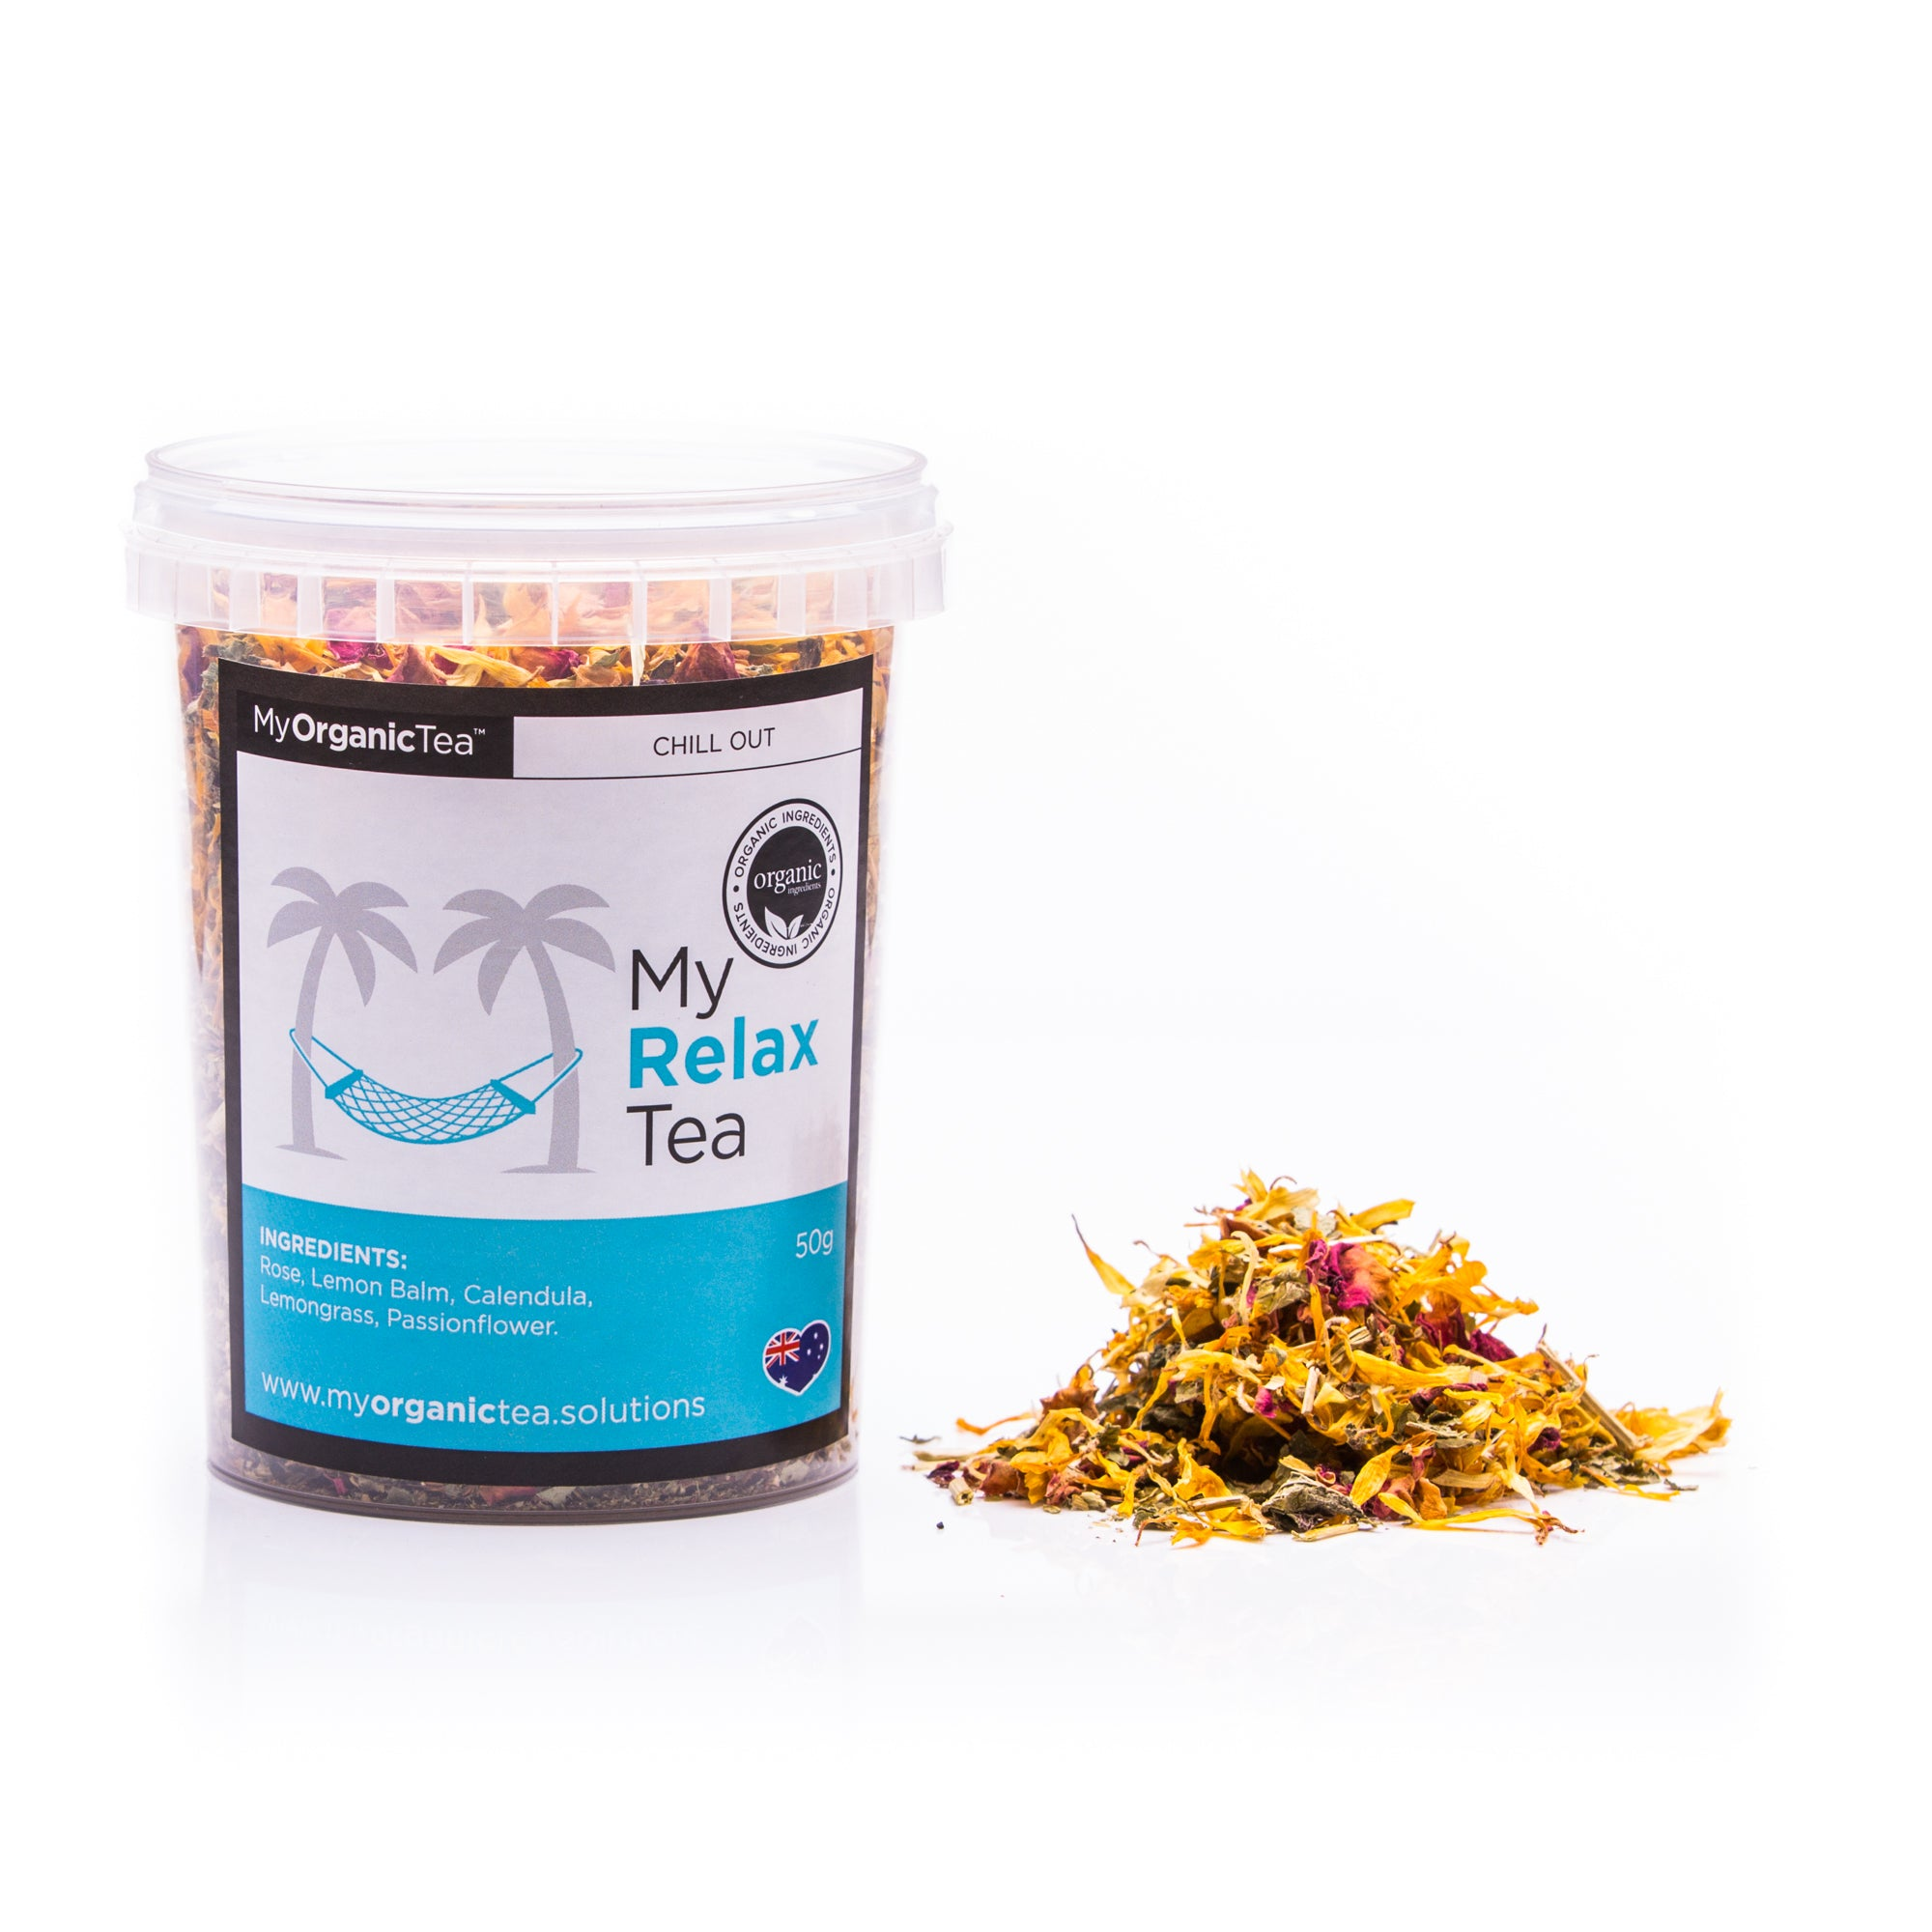 My Relax Tea 60 Grams (30 Serves) - OrganiTea Australia